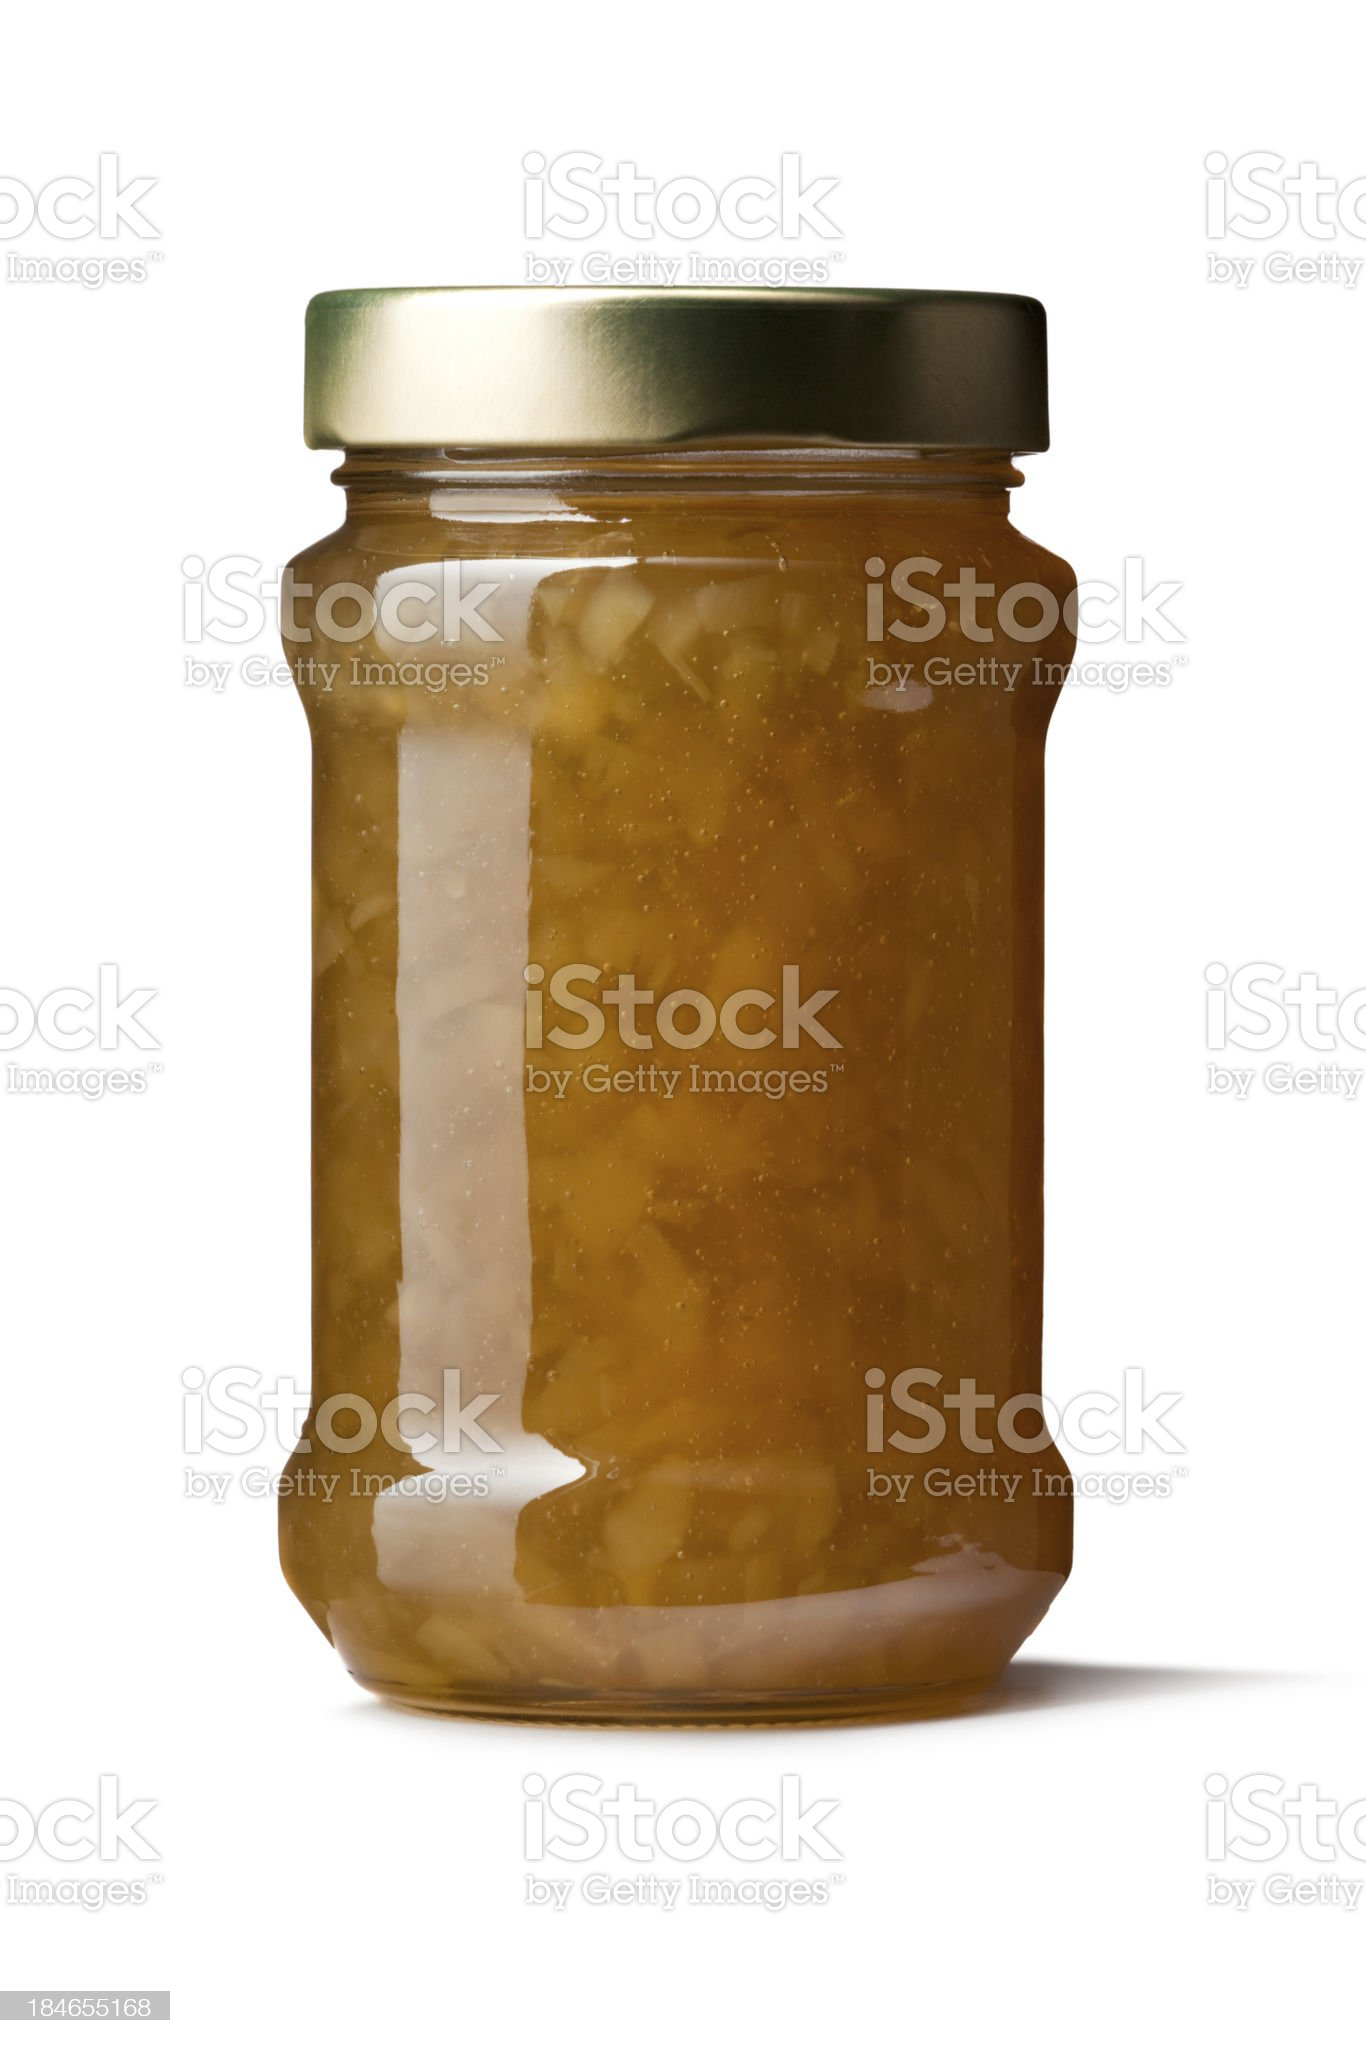 Ingredients: Ginger Spread royalty-free stock photo